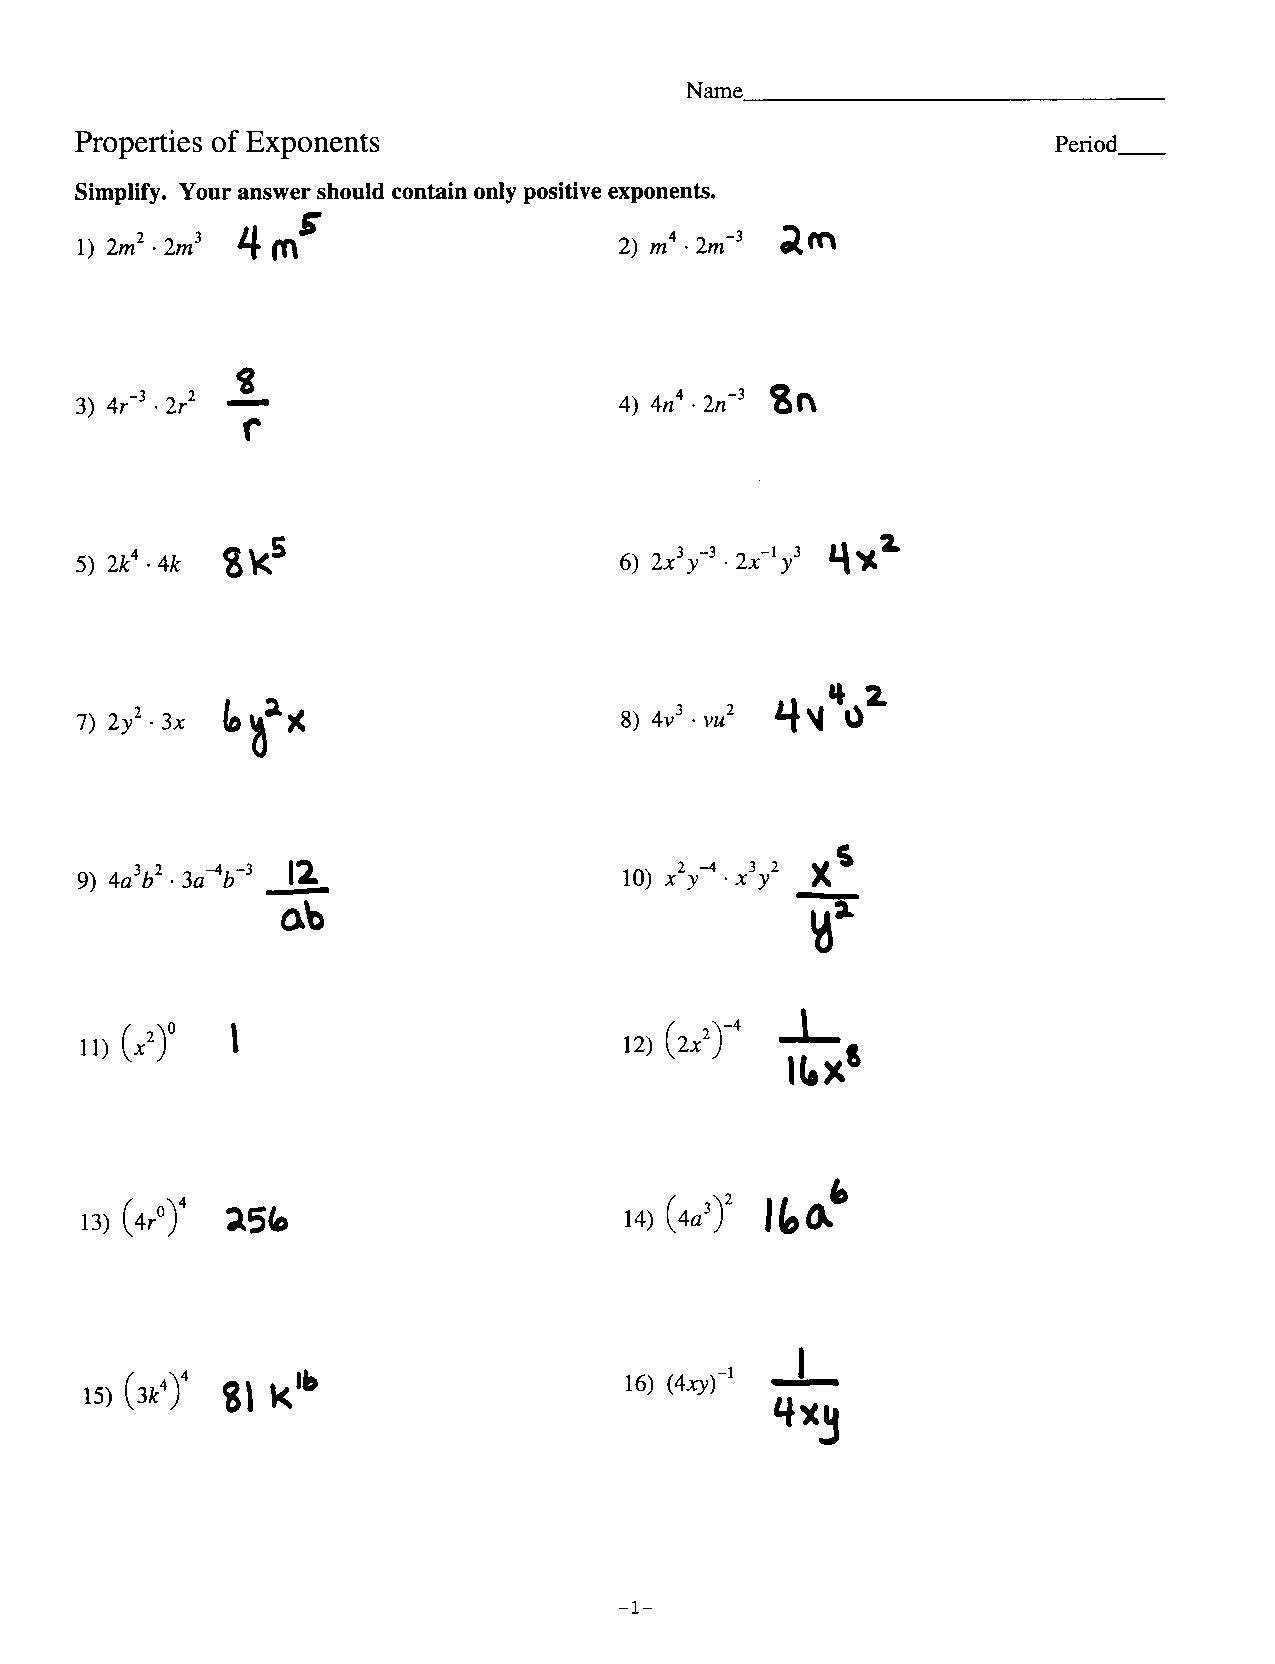 Properties Of Exponents Worksheet Answers Exponents Algebra 1 Worksheets